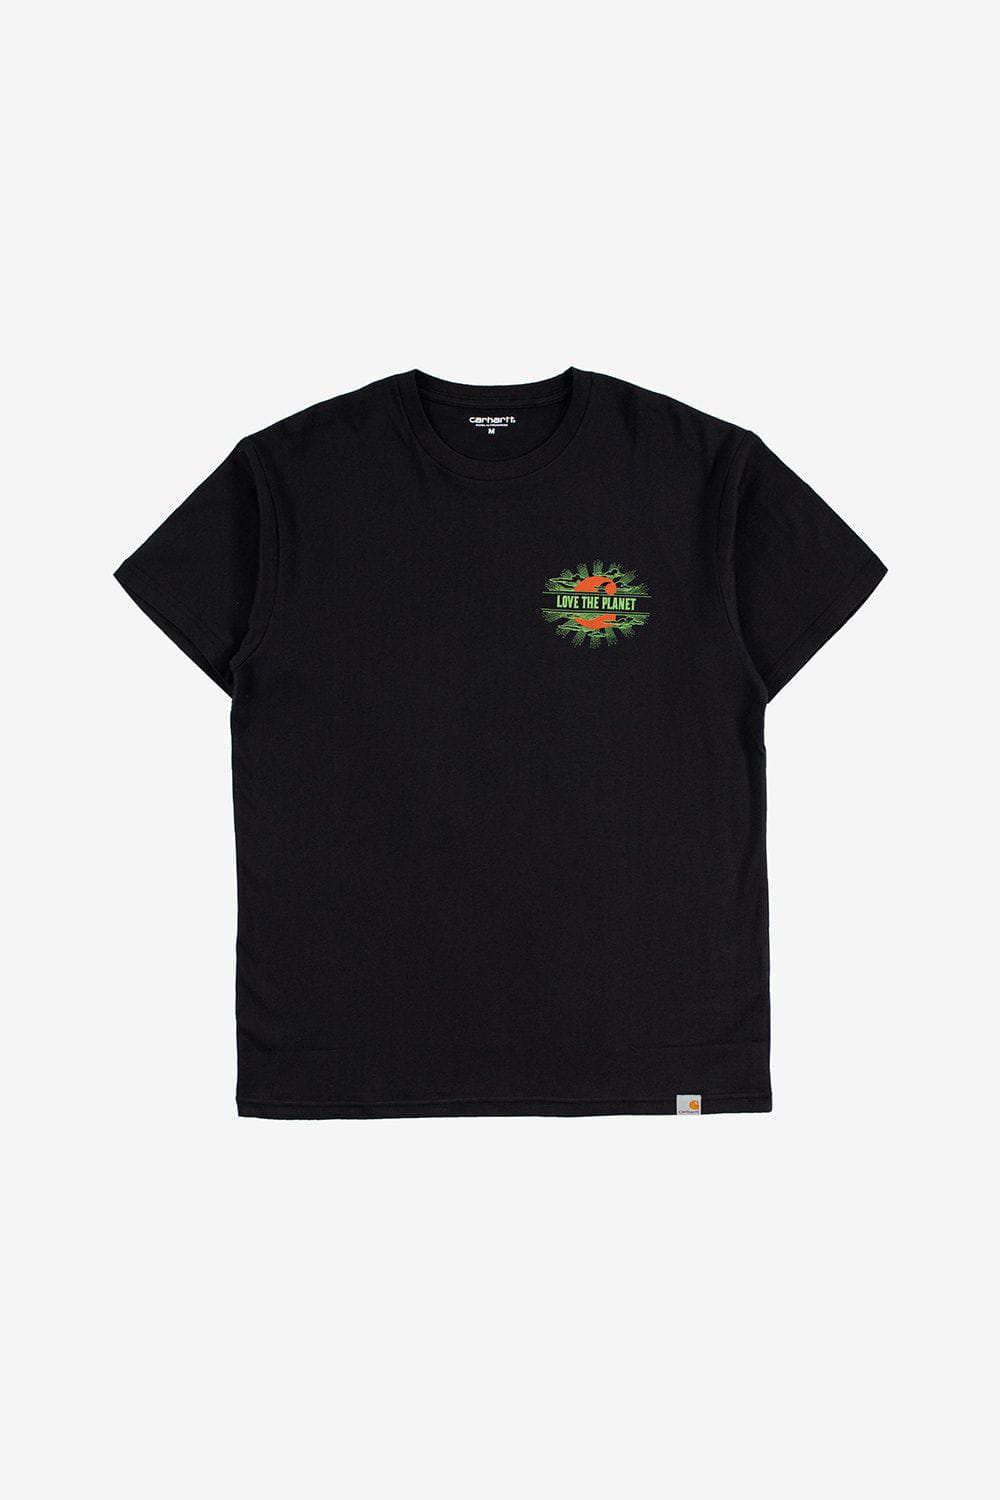 Carhartt WIP Apparel Love Planet T-shirt